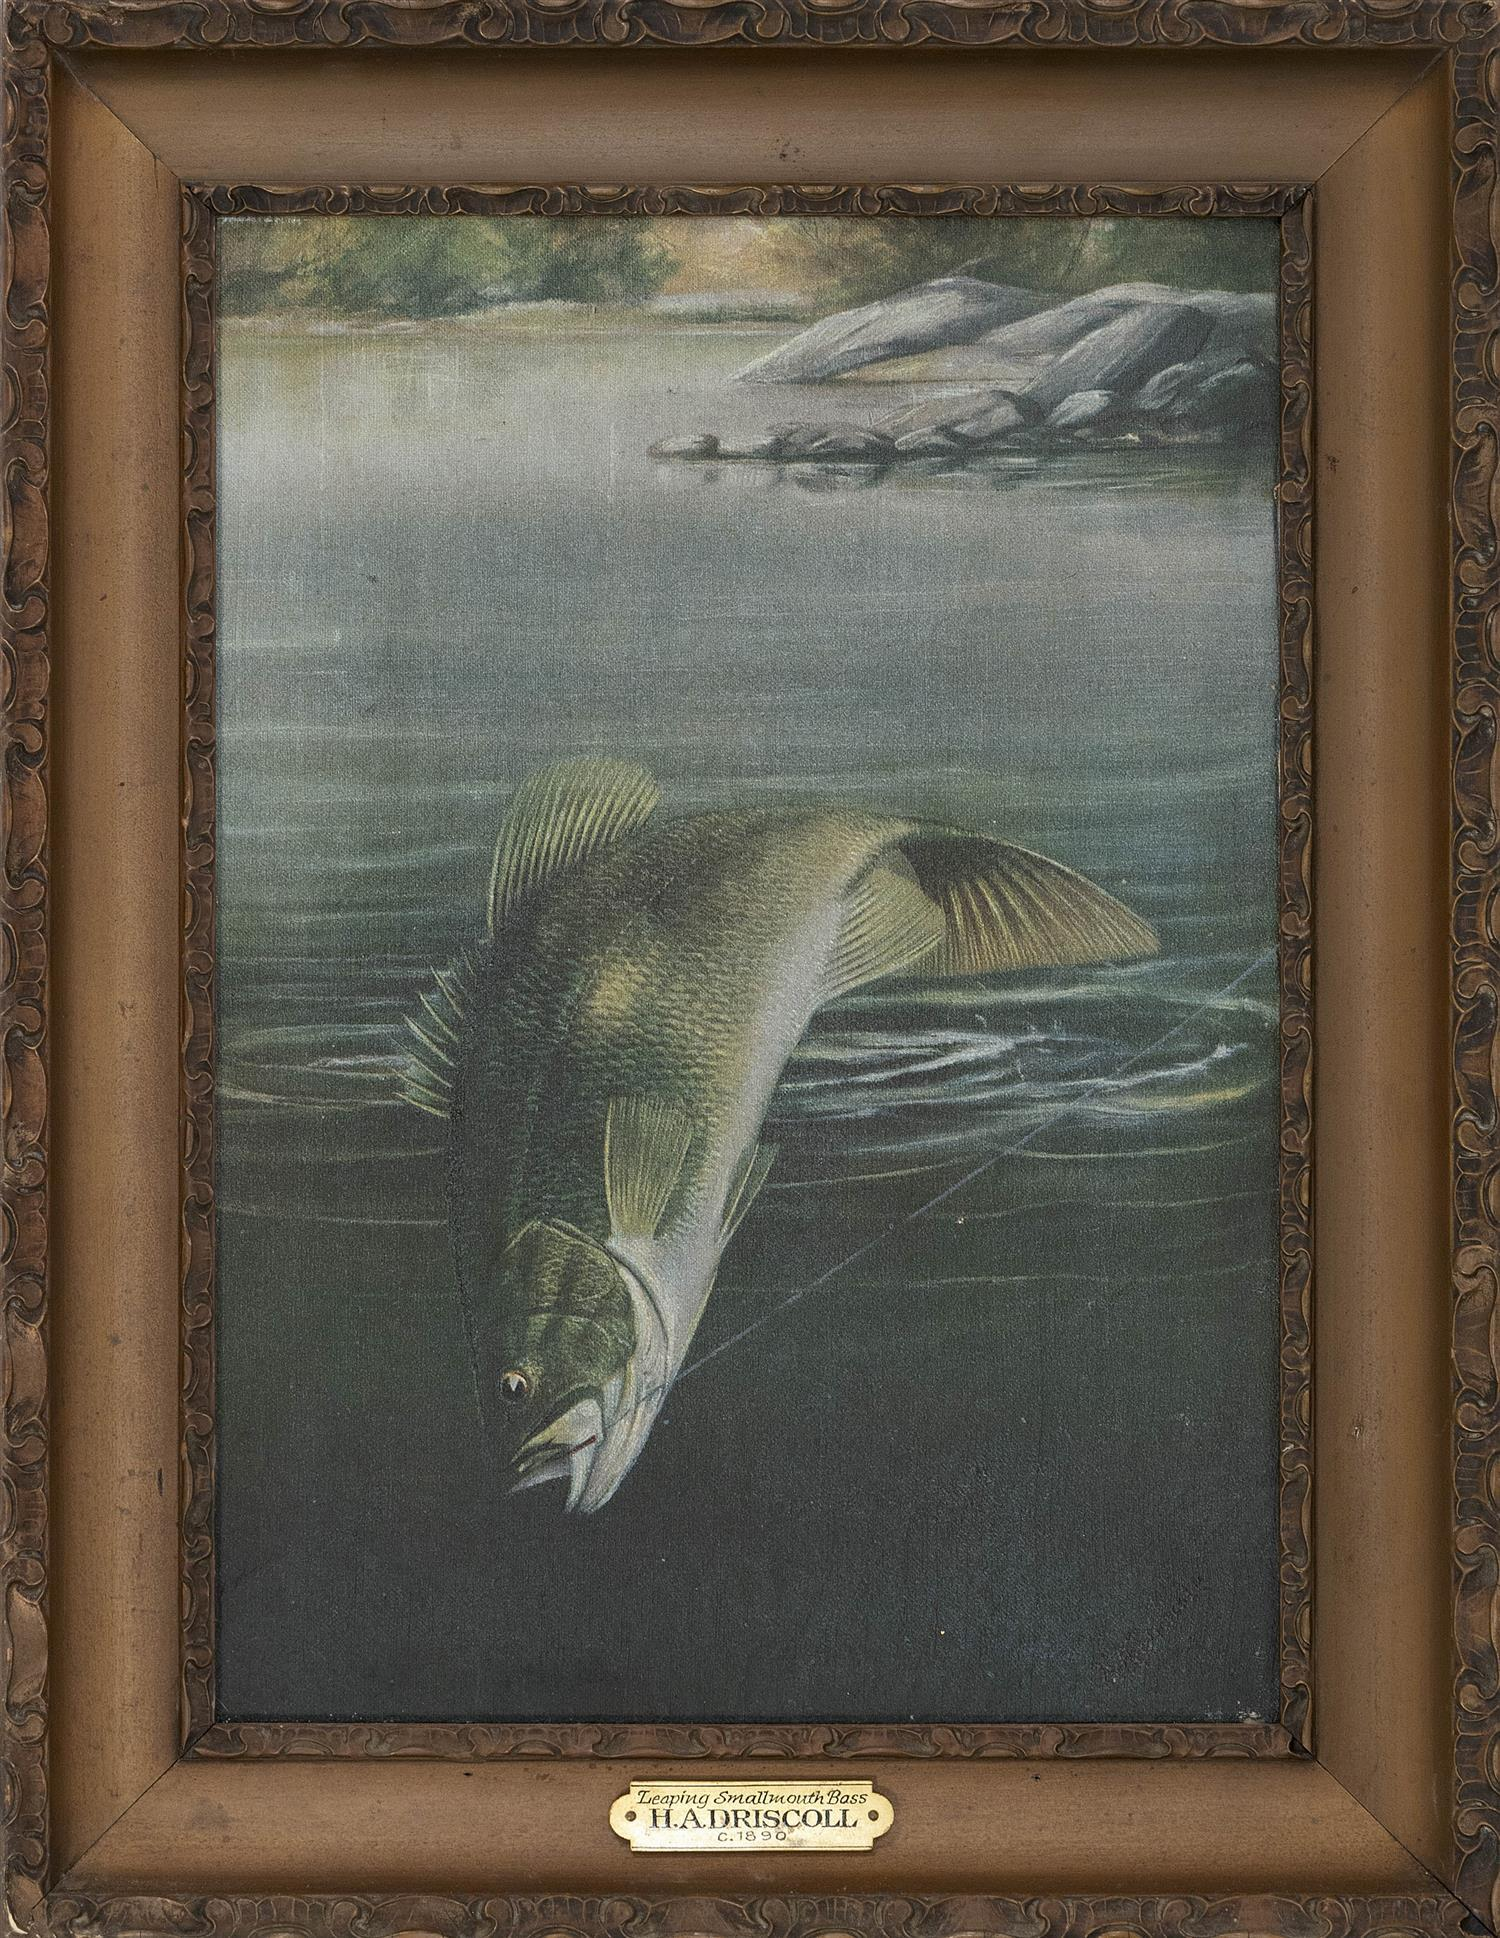 """HARRY A. DRISCOLE, New York, 1861-1923, """"Leaping Smallmouth Bass""""., Oil on canvas, 14"""" x 10"""". Framed 17.5"""" x 13.5""""."""